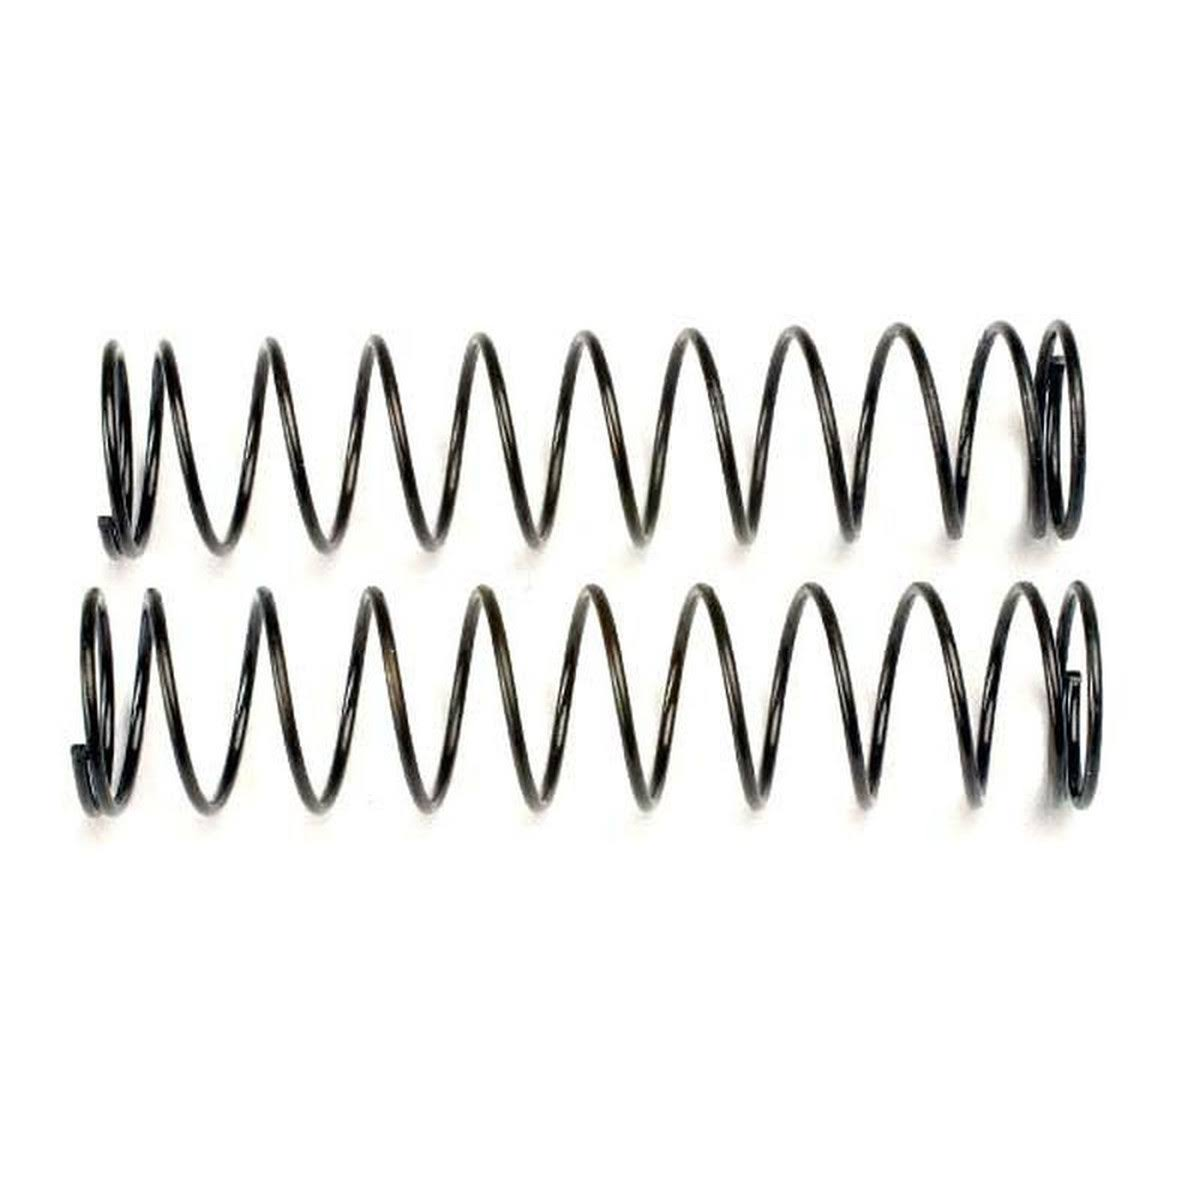 Traxxas 4457 Rear Rustler Springs - 2pcs, Black